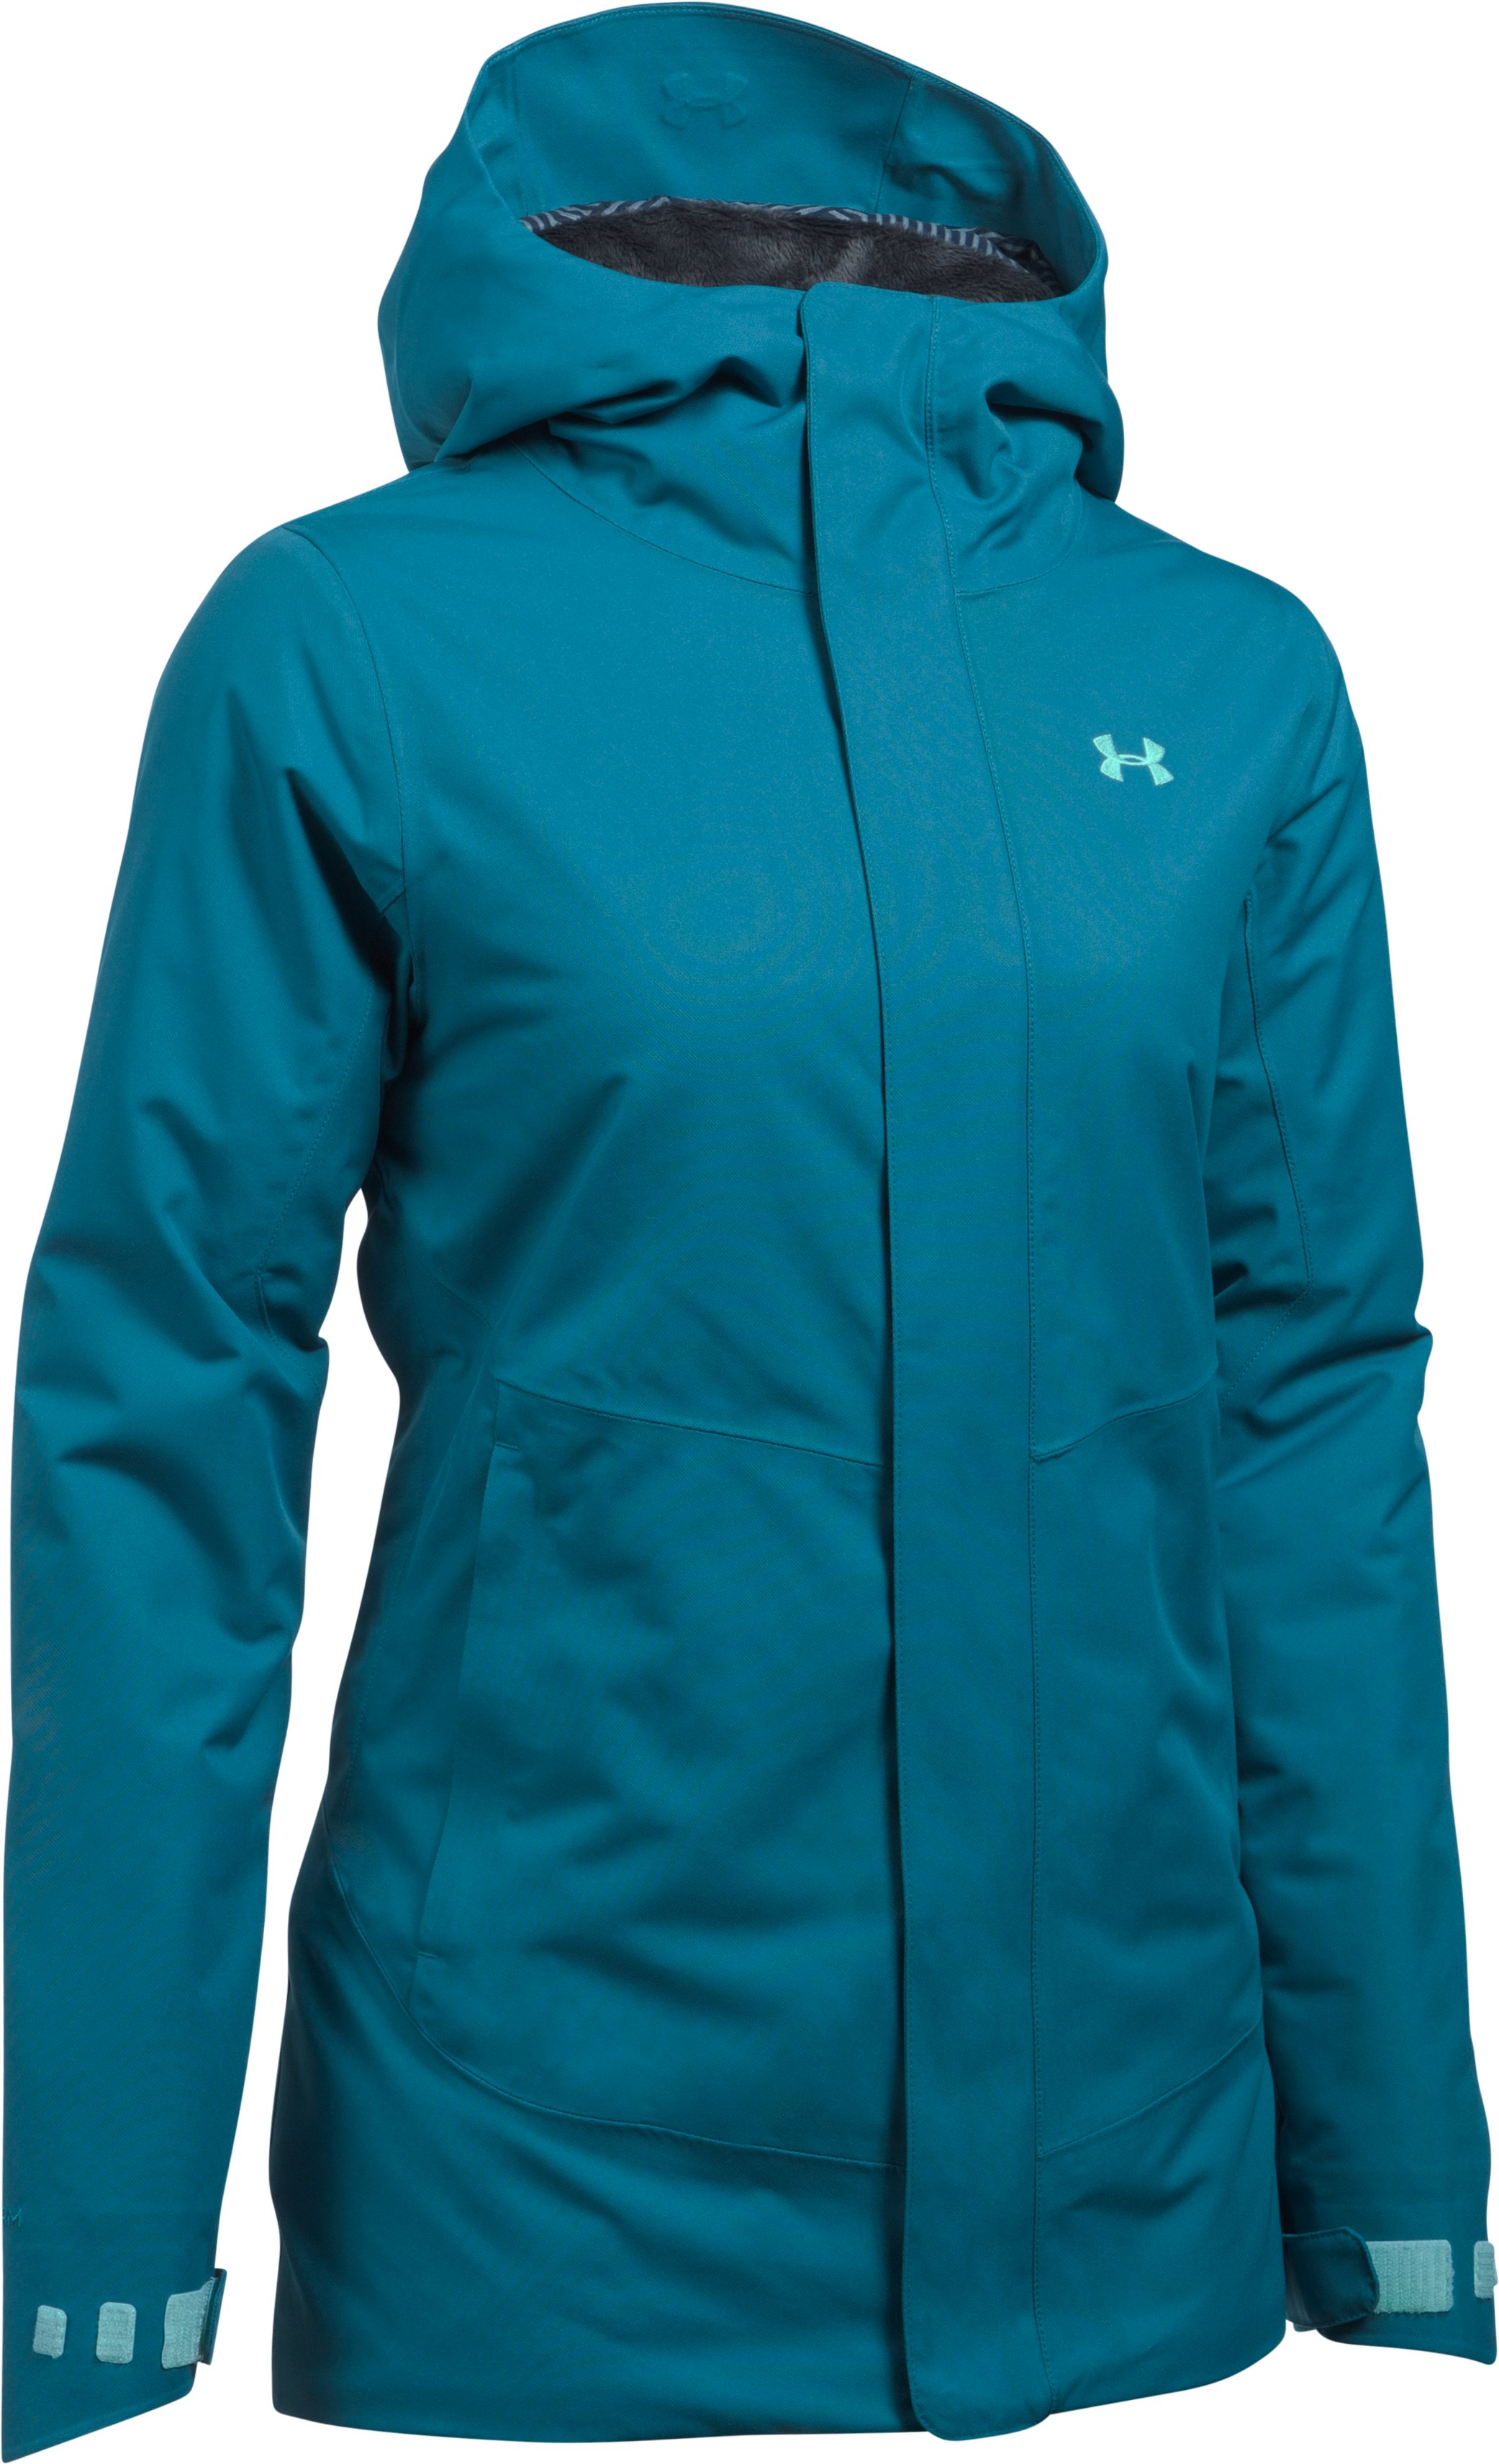 Women's ColdGear® Infrared Powerline Insulated Jacket, BAYOU BLUE, undefined